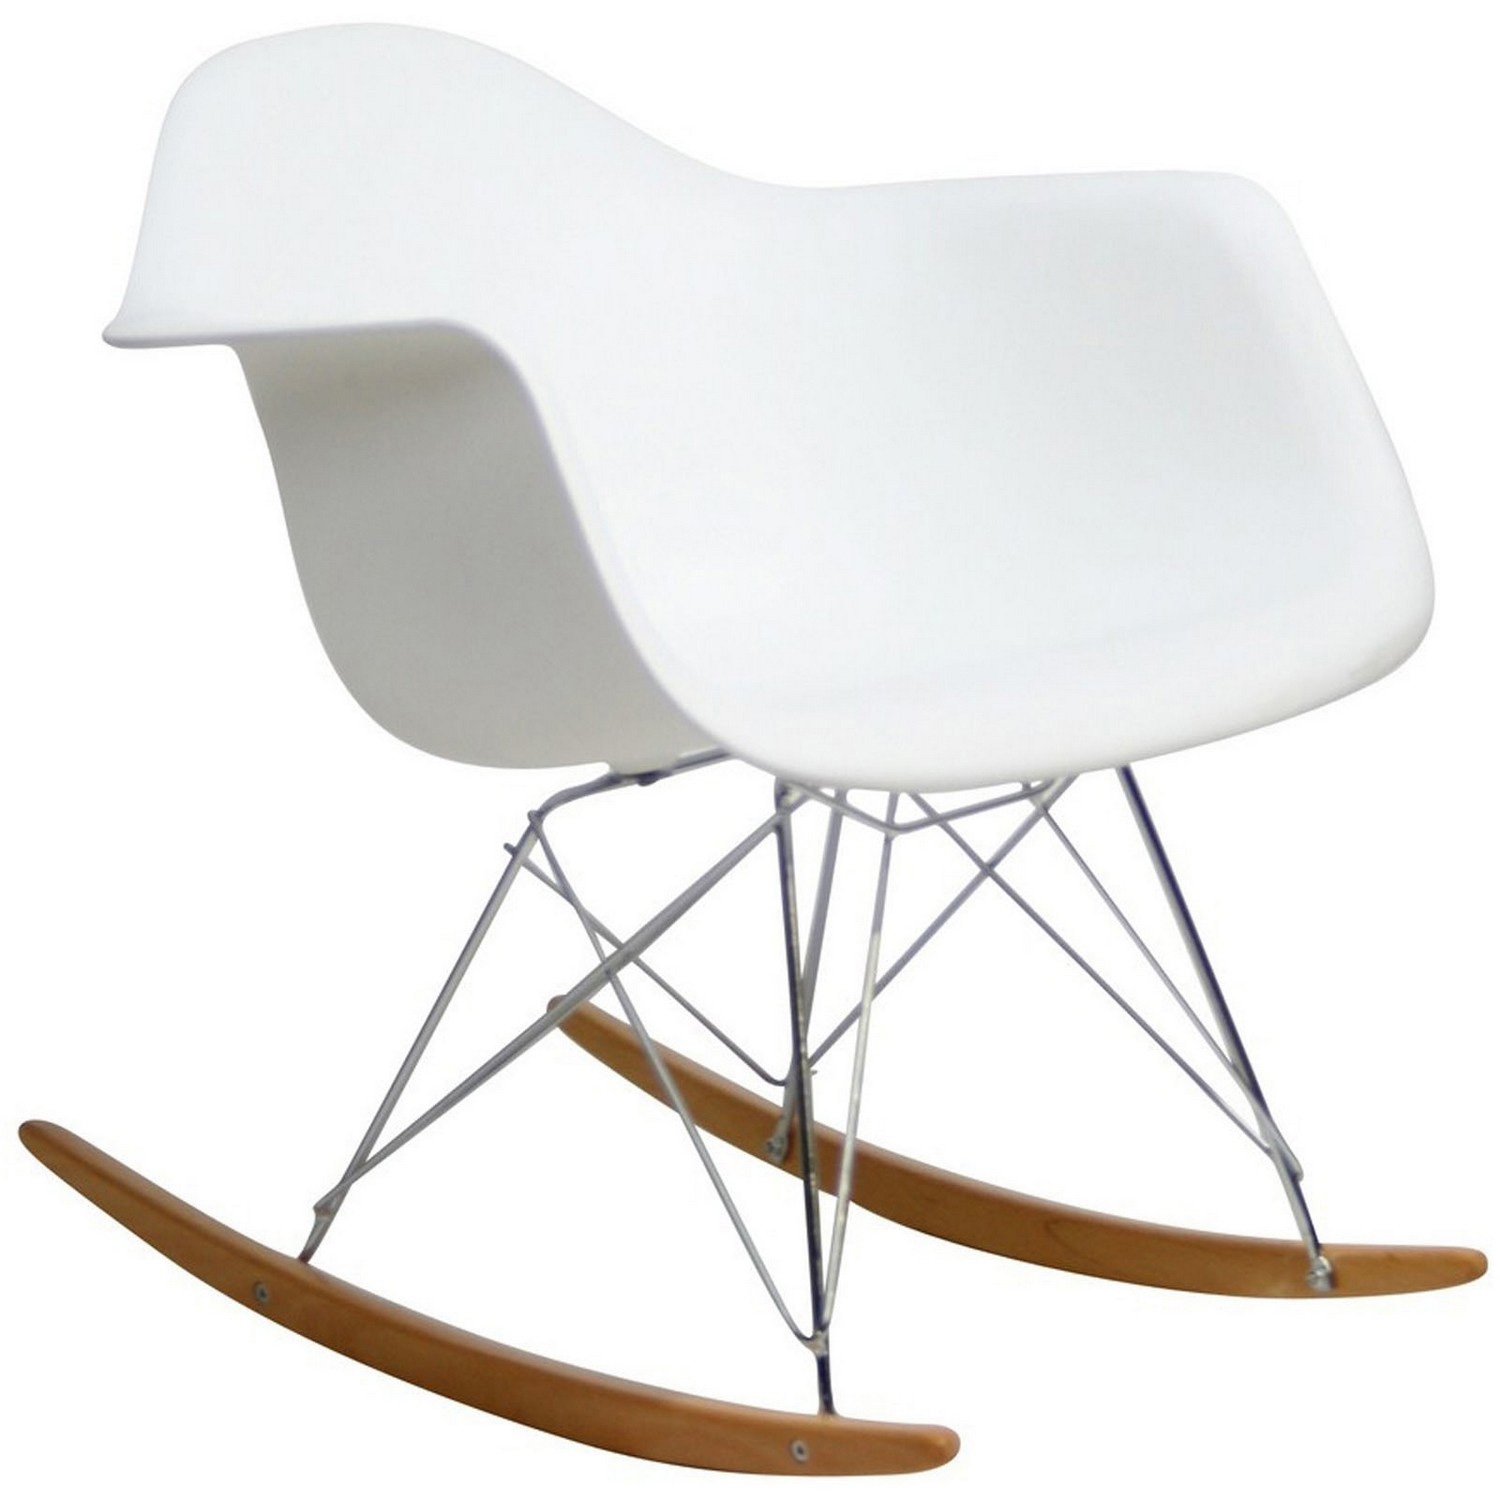 Modway Rocker Lounge Chair - White